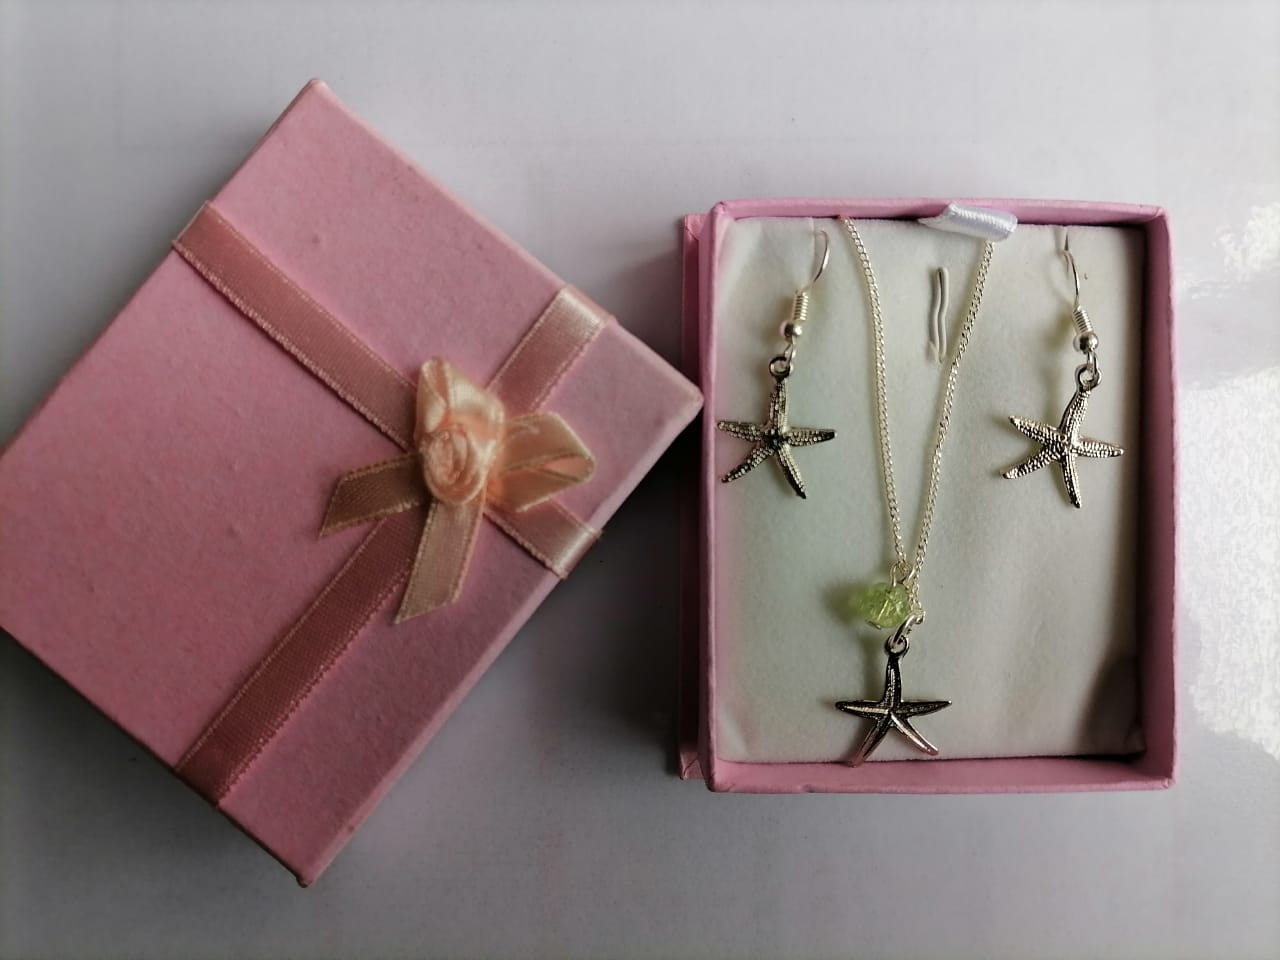 Personalised gifts & Engraved jewelry- Ad posted by LJ Jooste